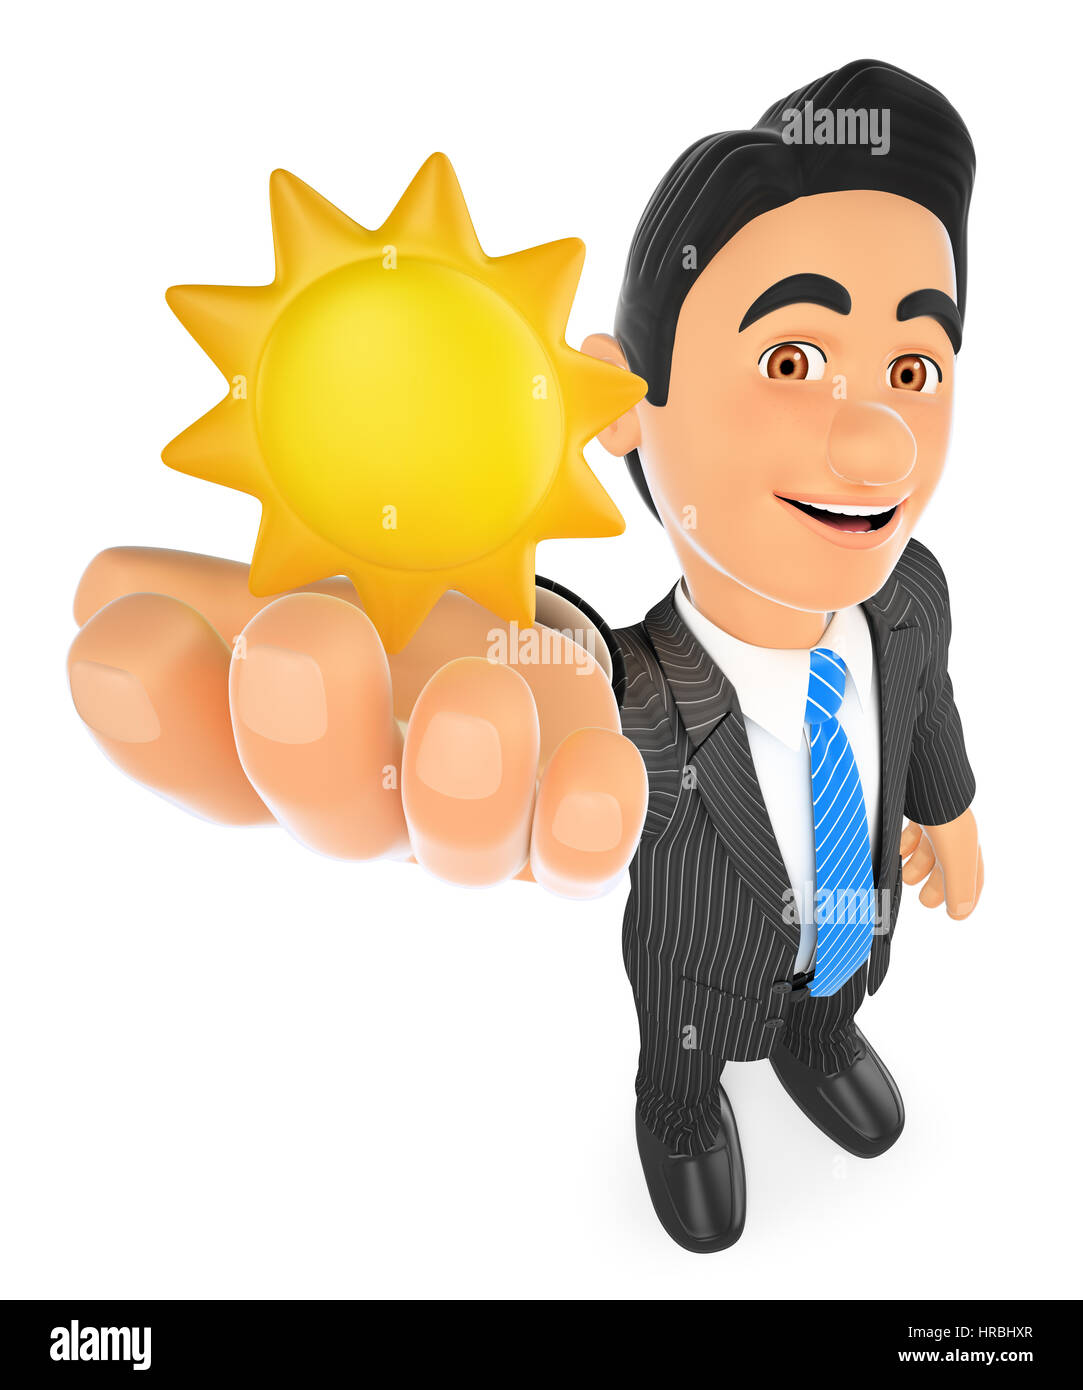 3d business people illustration. Weather man with a sun. Sunny day. Isolated white background. - Stock Image